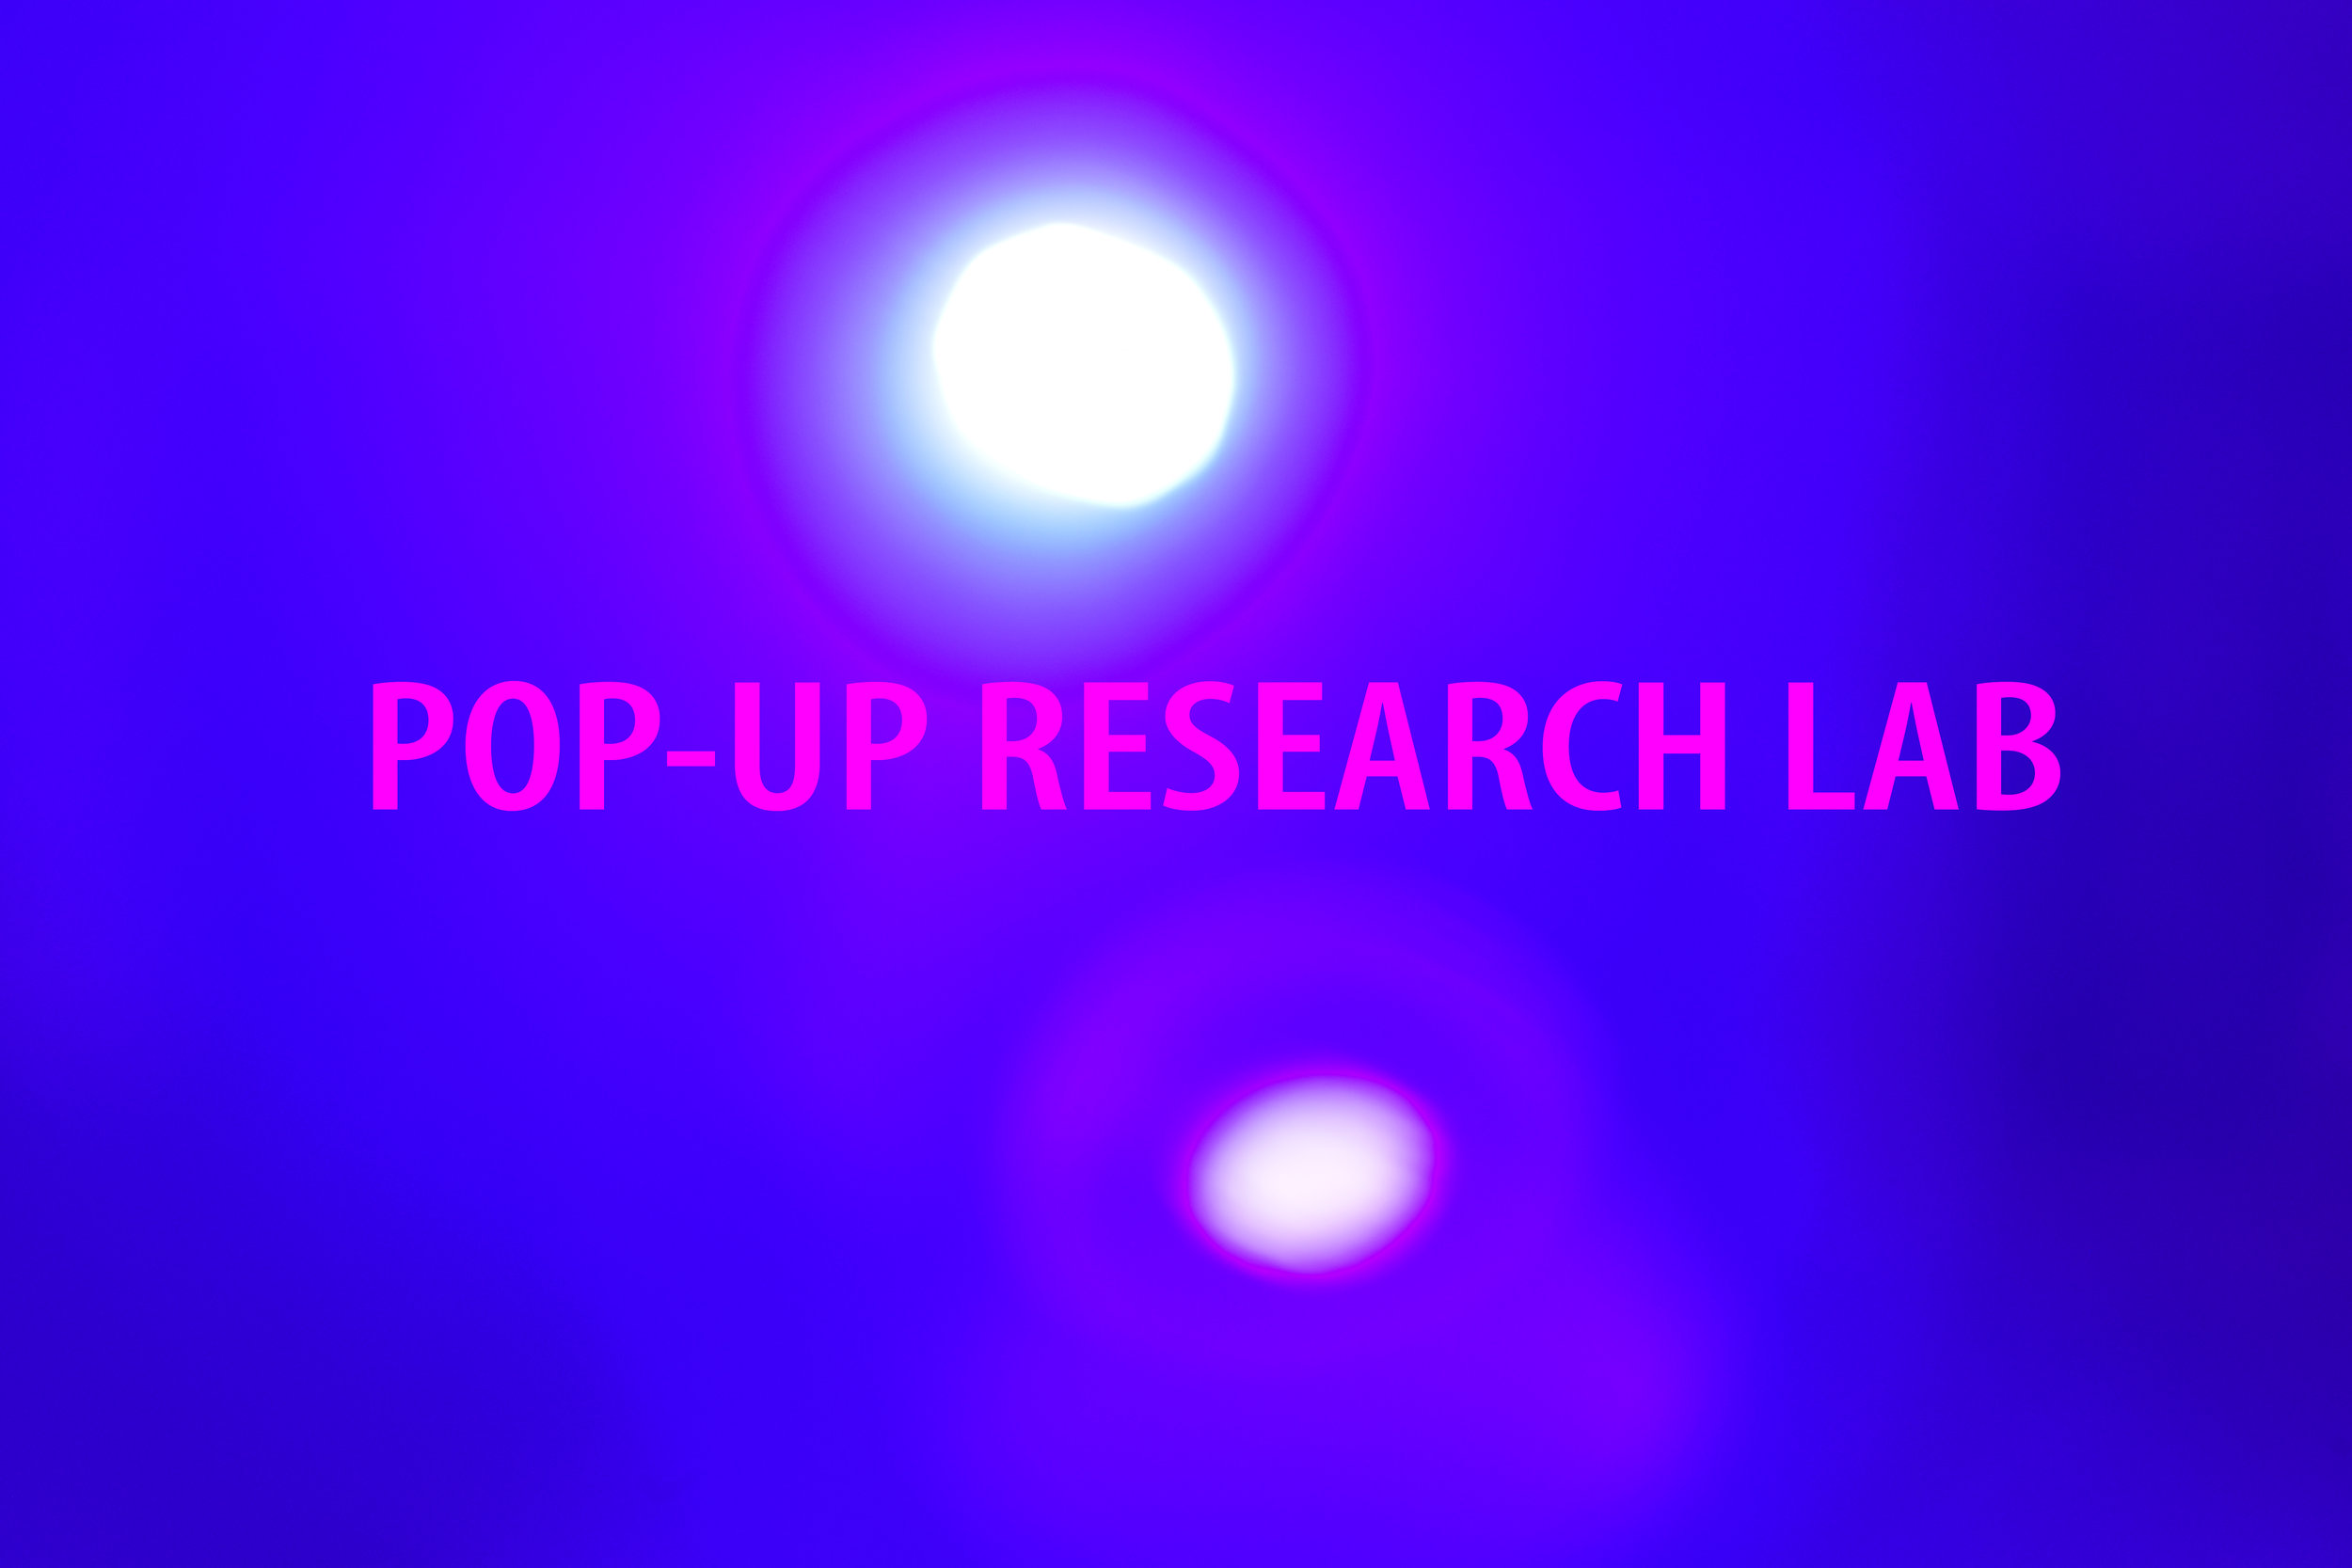 A Game Approach to Art Appreciation   Pop-Up Research Lab   Sunday, 30 September, 12 noon - 2pm   The Lock Up Newcastle   https://thisisnotart.org/events/a-game-approach-to-art-appreciation-pop-up-research-lab/